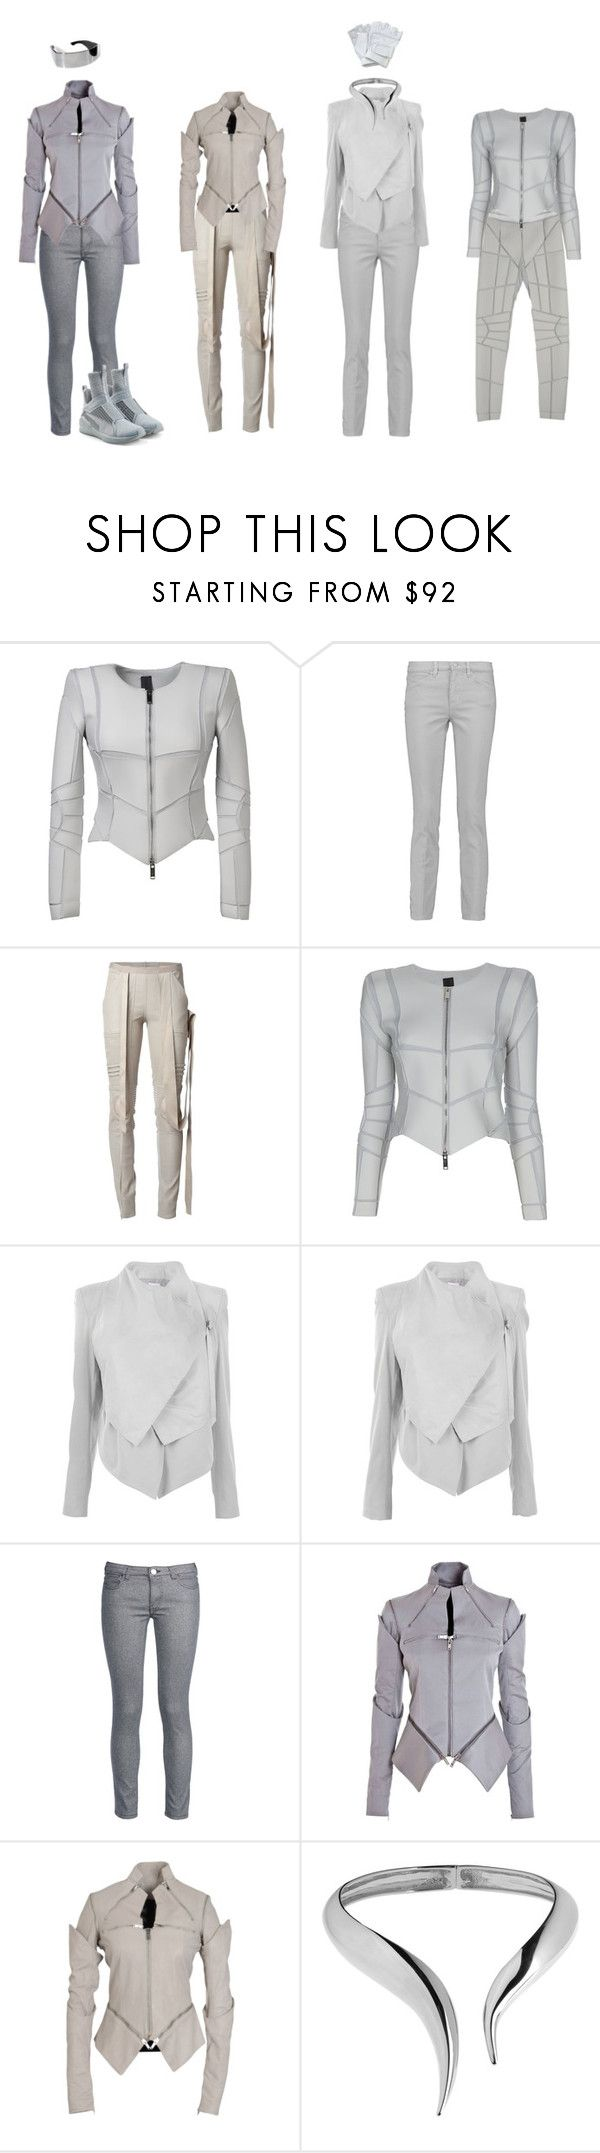 """Uniform"" by gone-girl ❤ liked on Polyvore featuring Gareth Pugh, Tory Burch, Rick Owens, Helmut Lang, George J. Love, Giuseppe Zanotti and Puma"